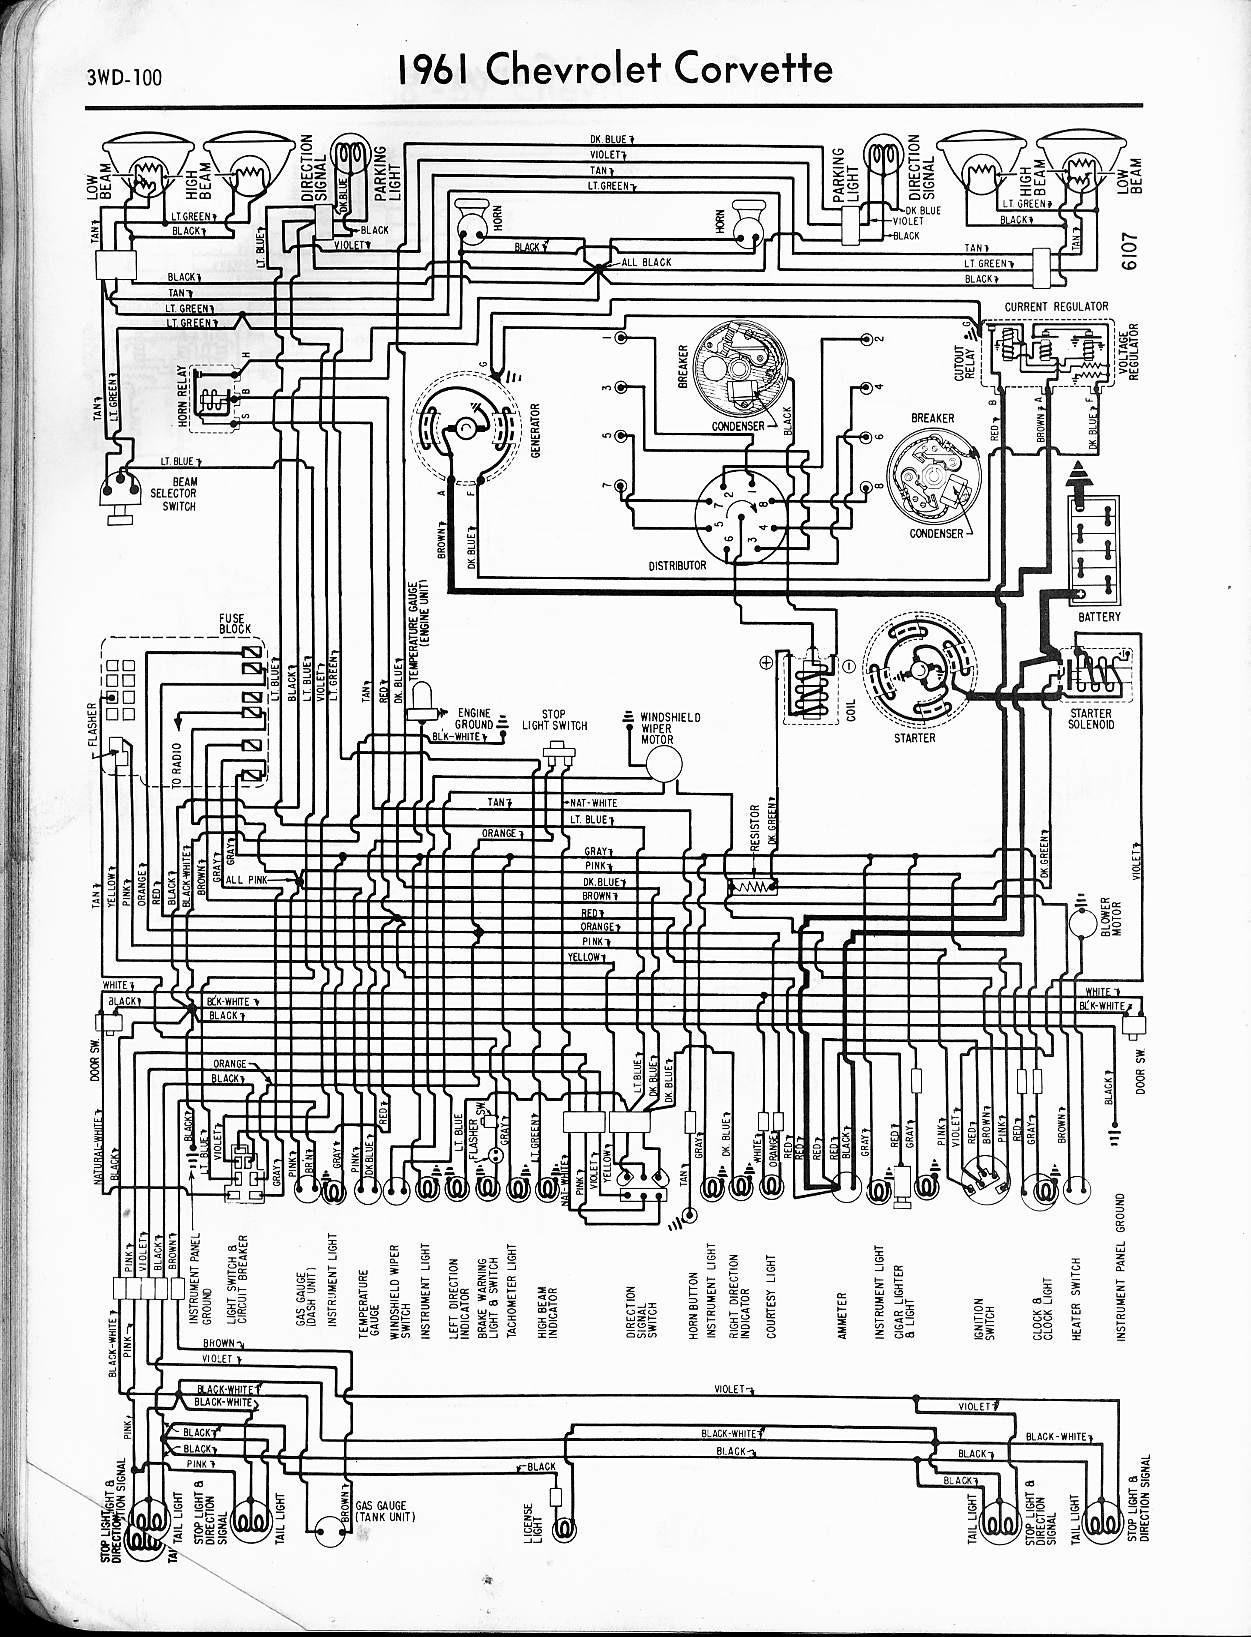 1979 Firebird Radio Wiring Diagram - Wiring Diagram